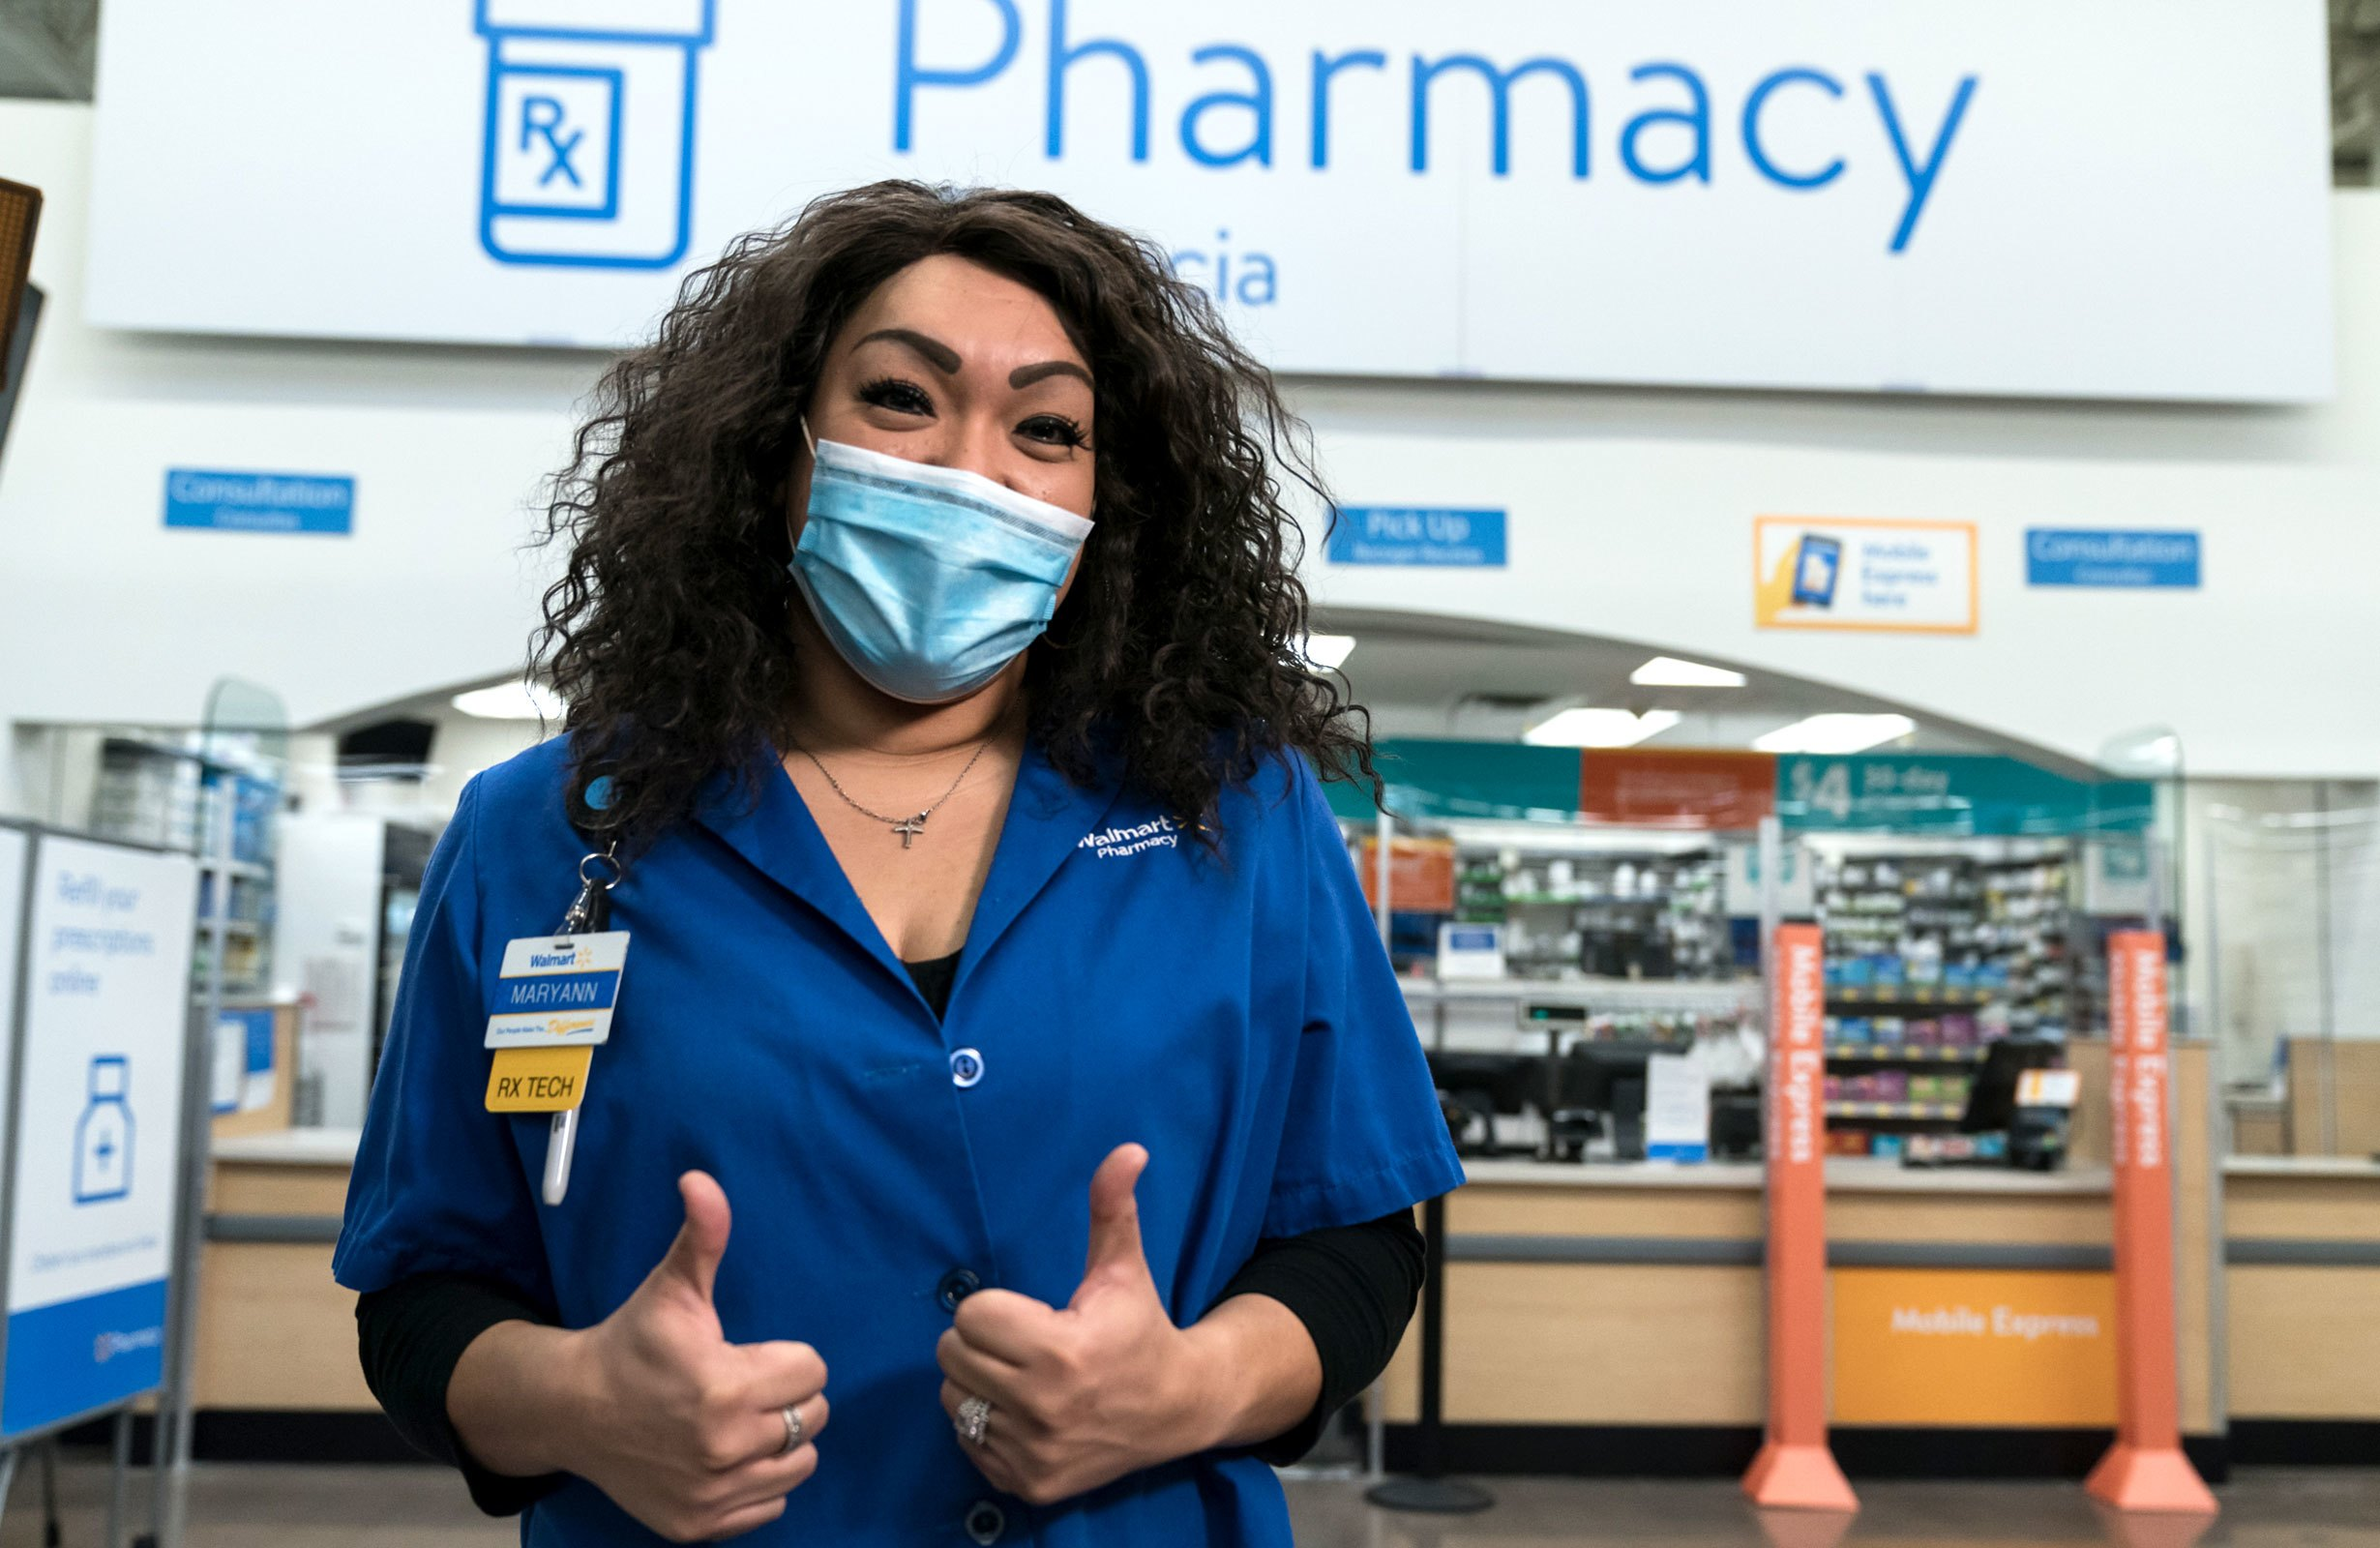 Pharmacy Tech in Front of Pharmacy with Sign in Background